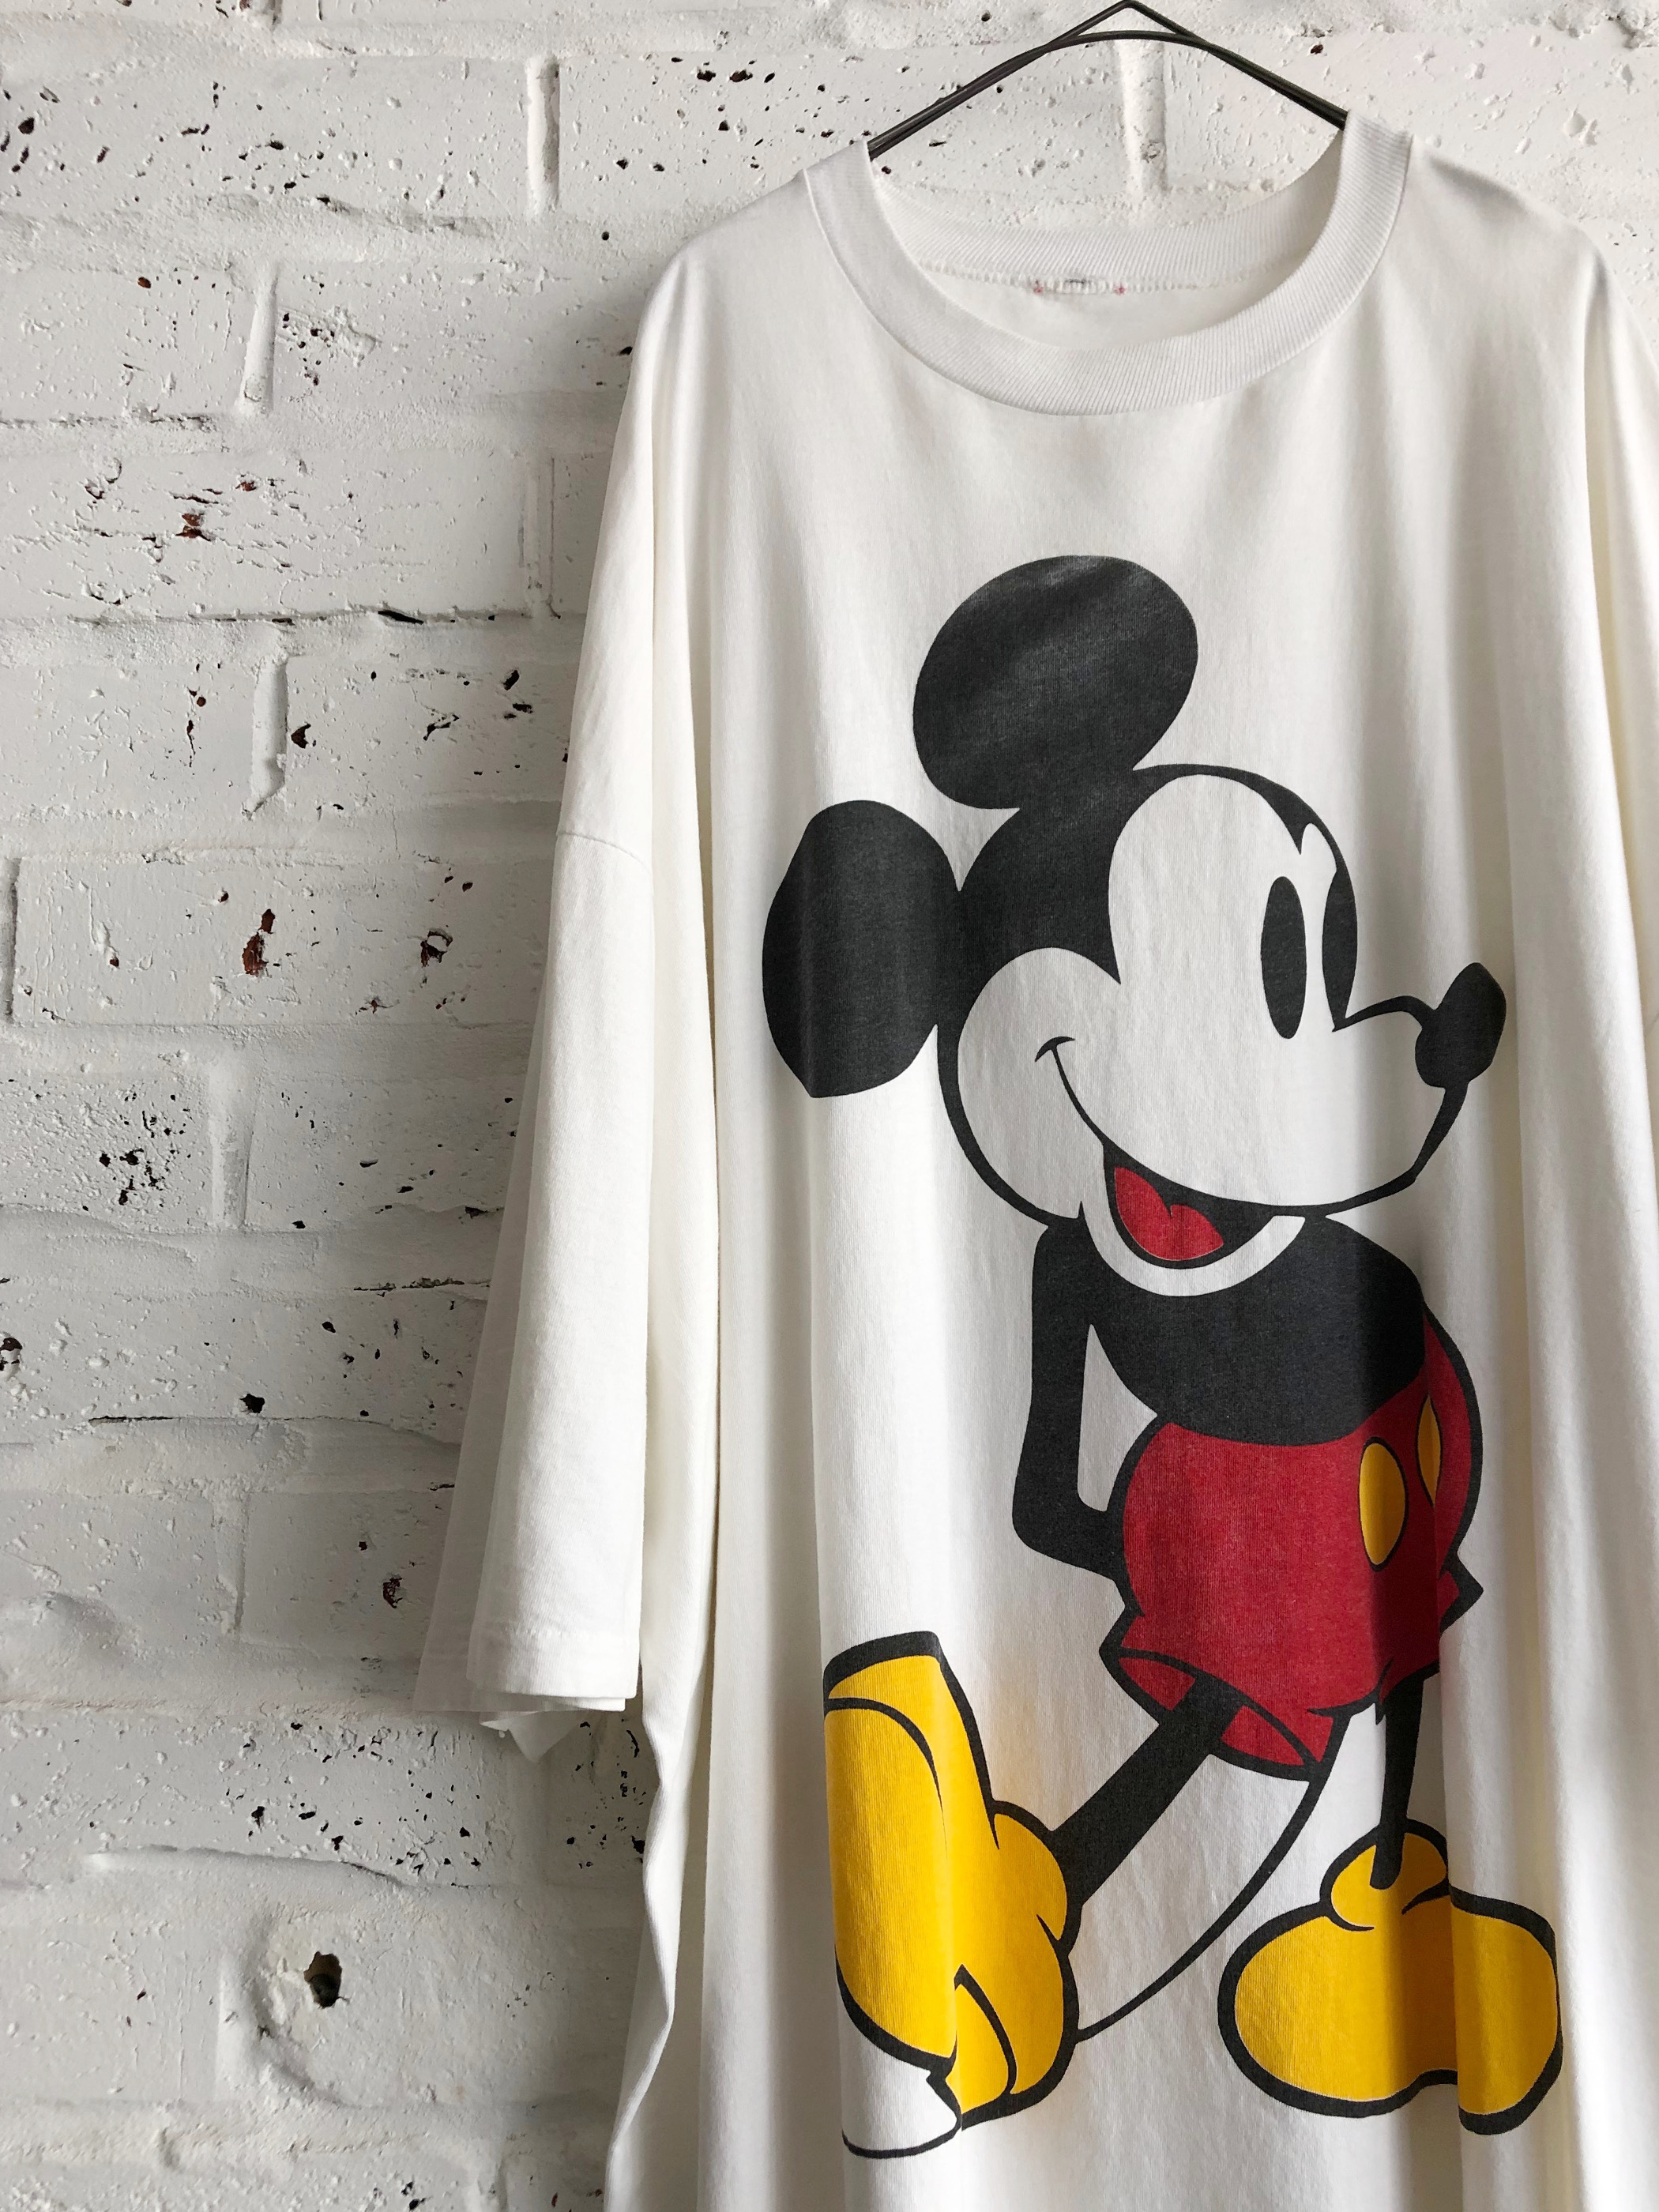 Vintage 90's Super Over Size Big Mickey Mouse Print T-shirt